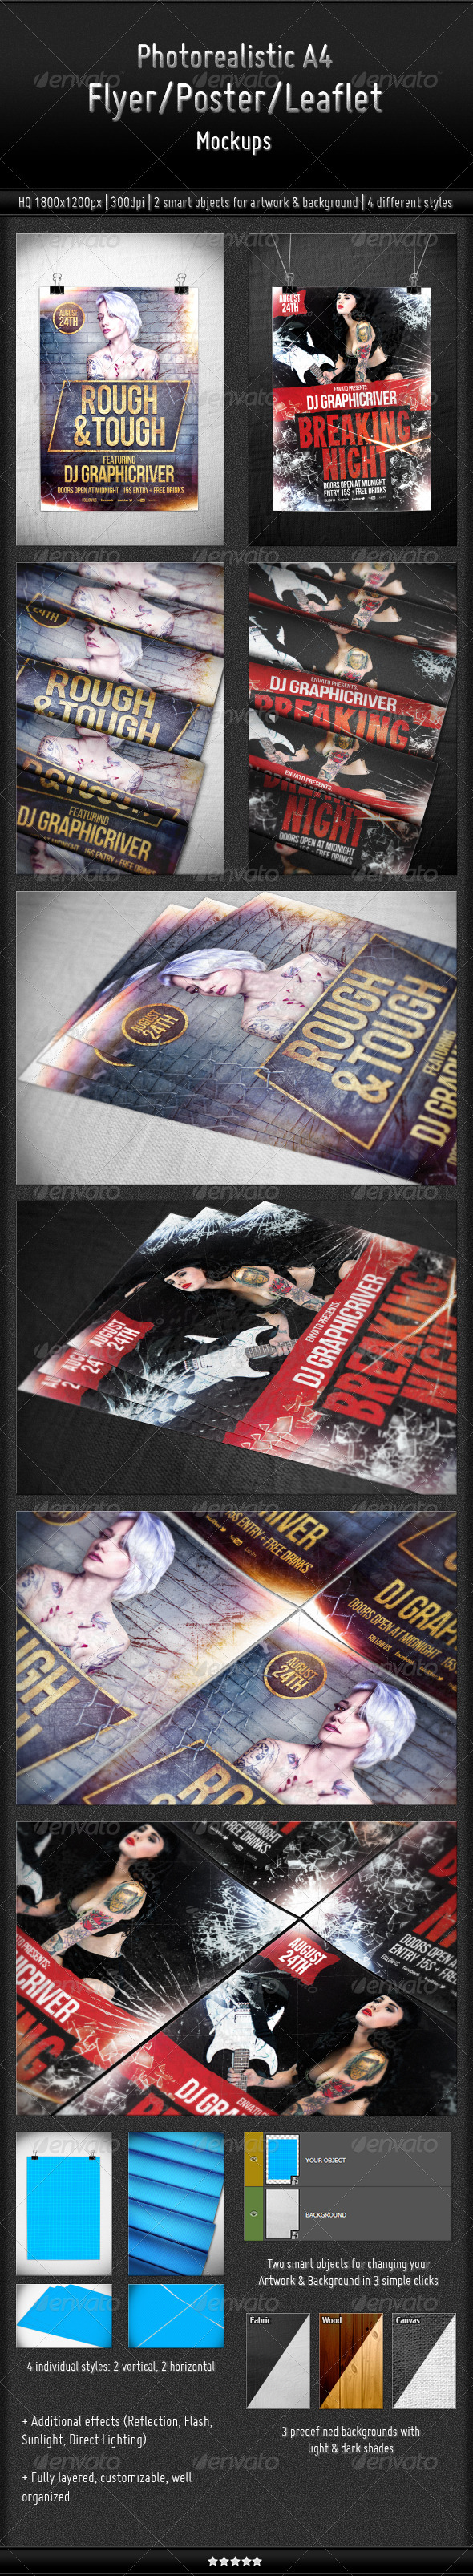 Photorealistic A4 Flyer/Poster/Leaflet Mockups - Flyers Print